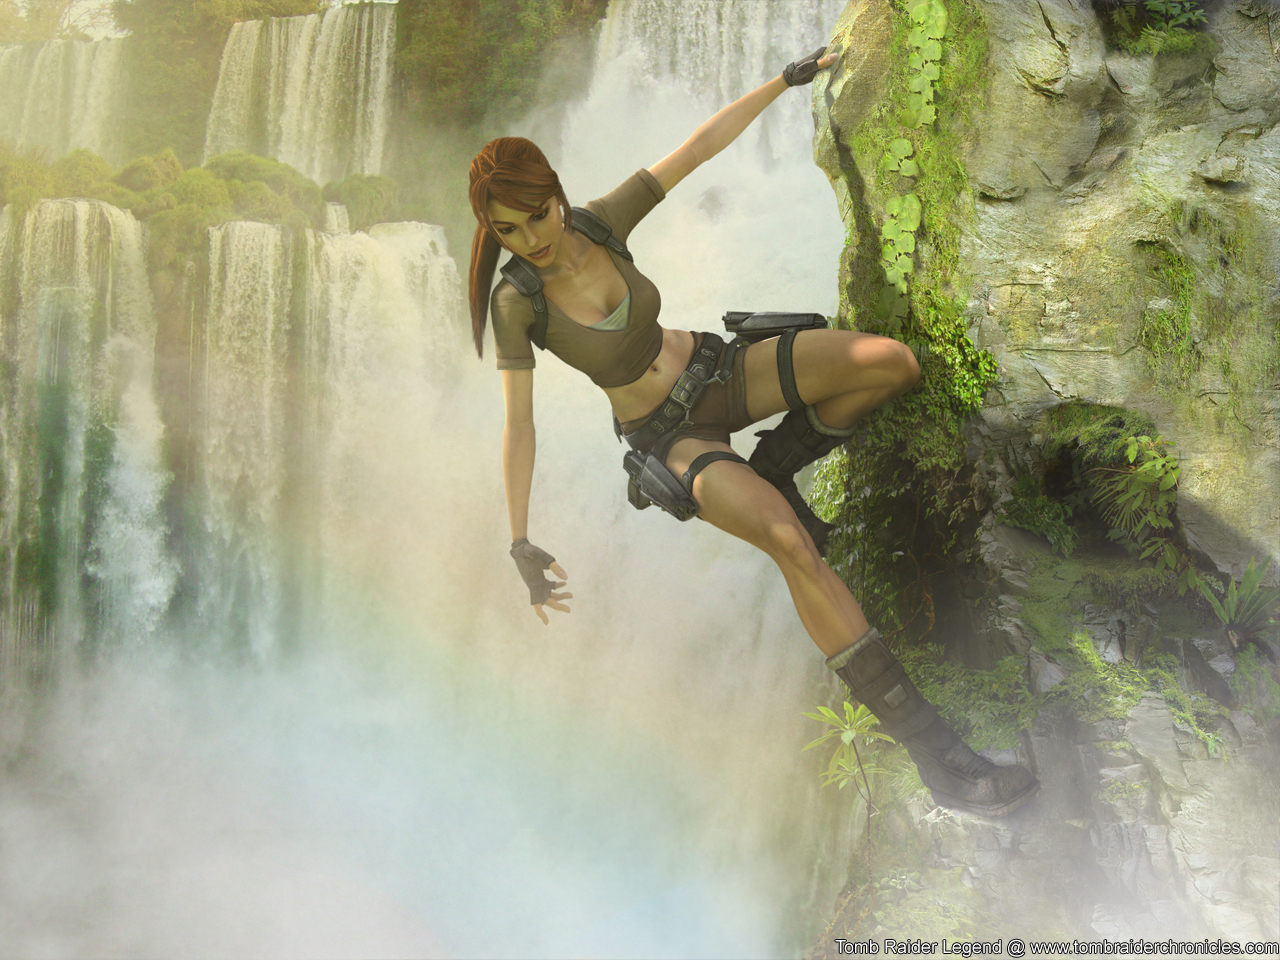 tomb raider new hd wallpapers 2015 all hd wallpapers. Black Bedroom Furniture Sets. Home Design Ideas